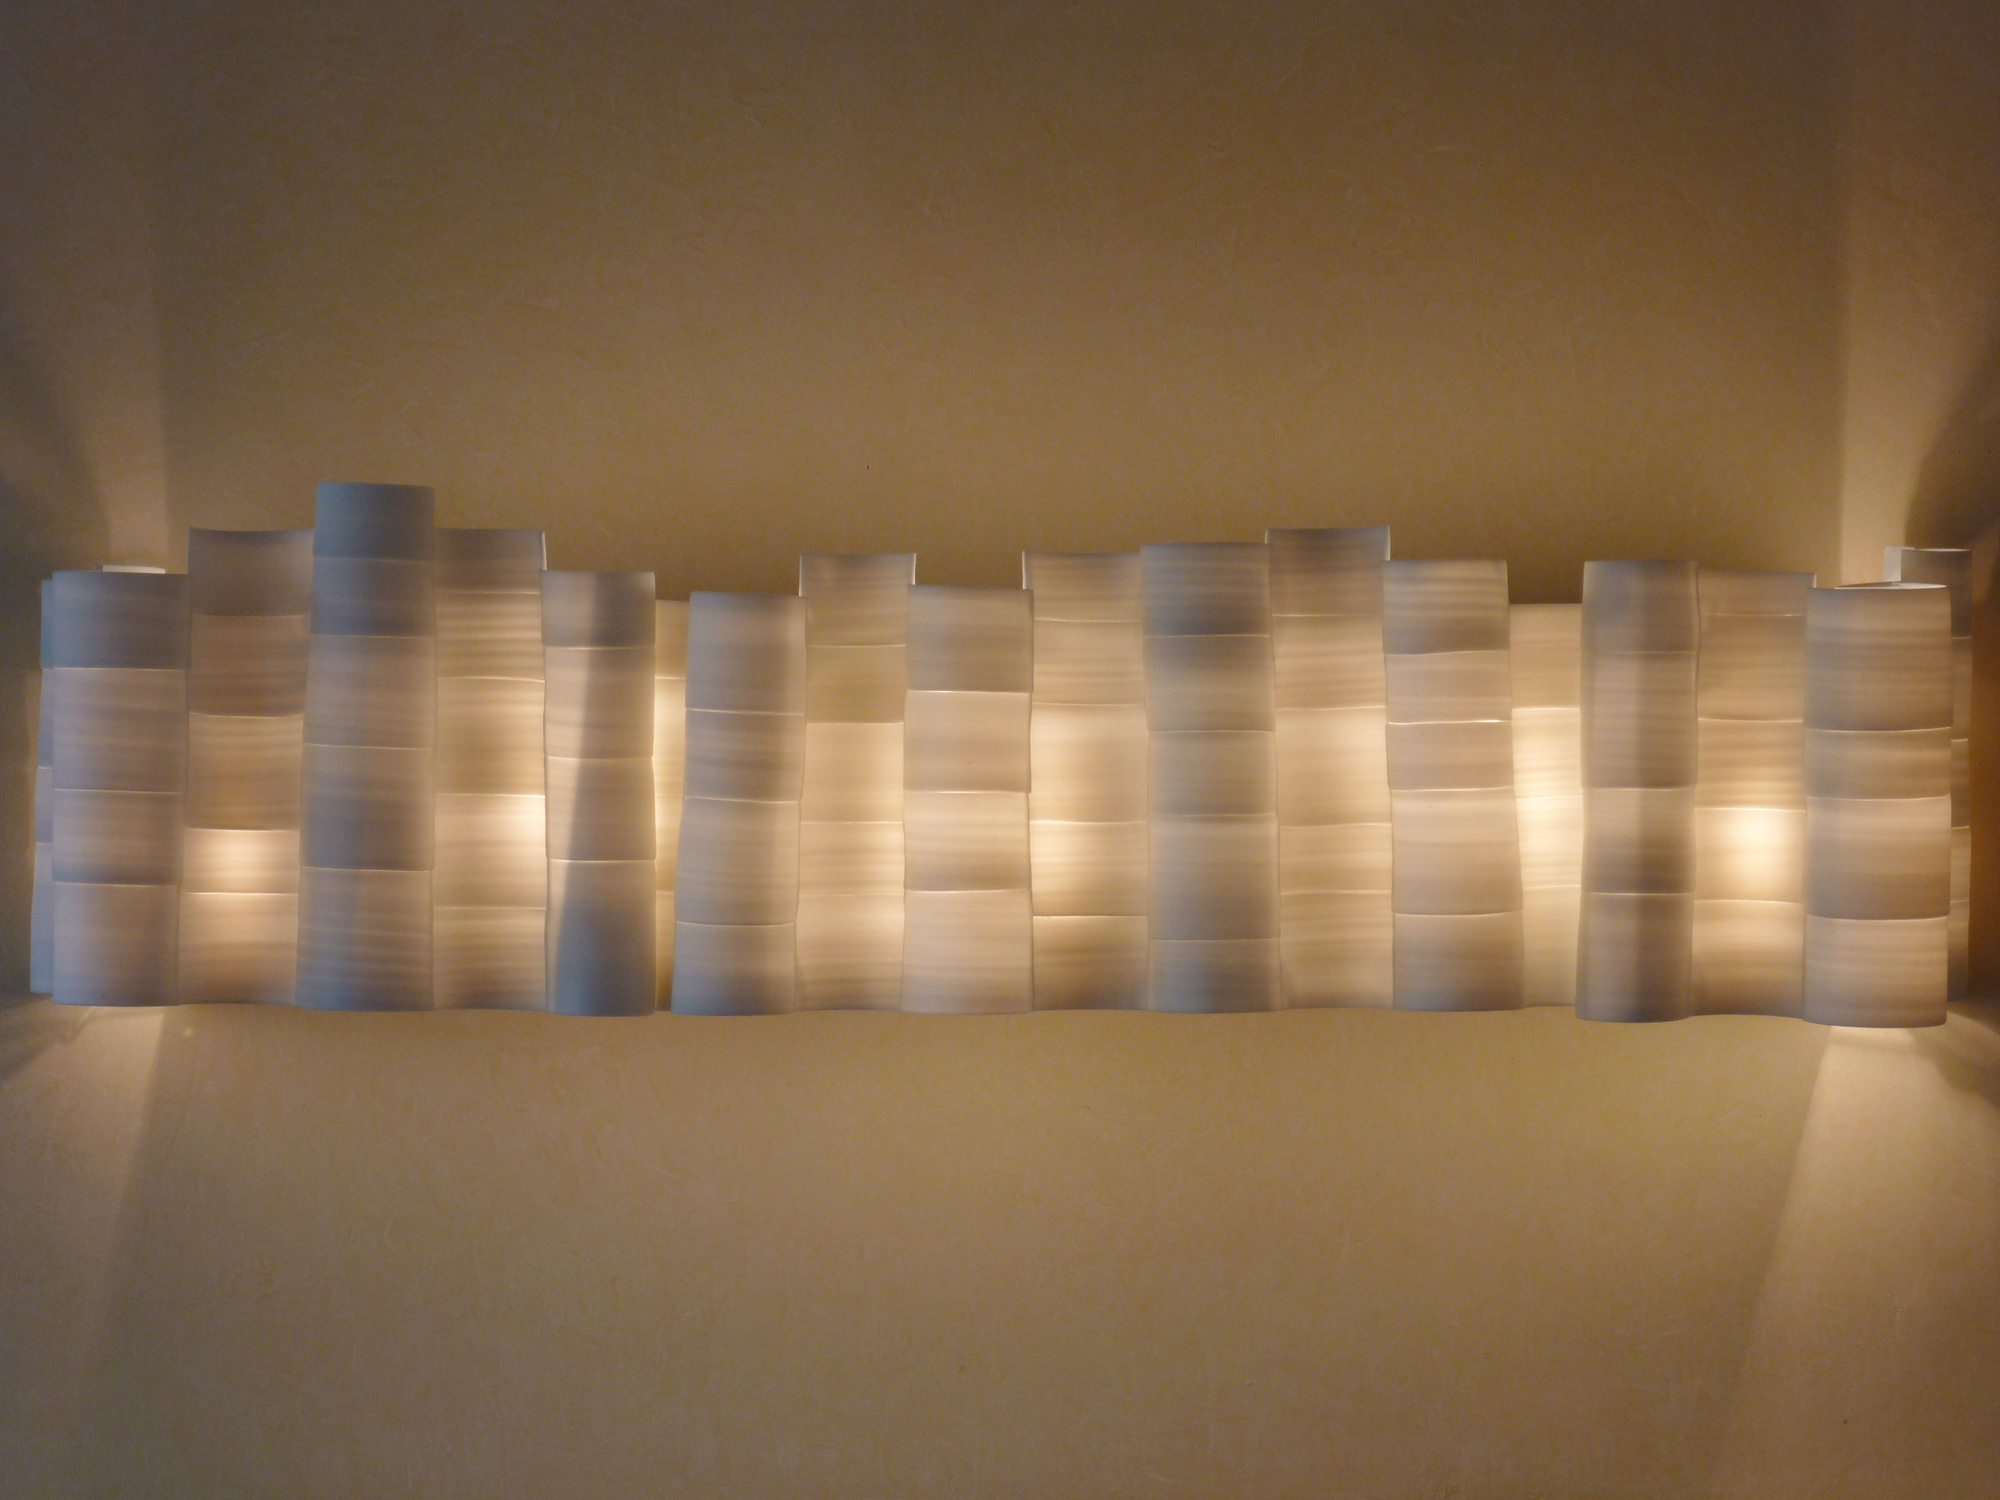 34. Wall light